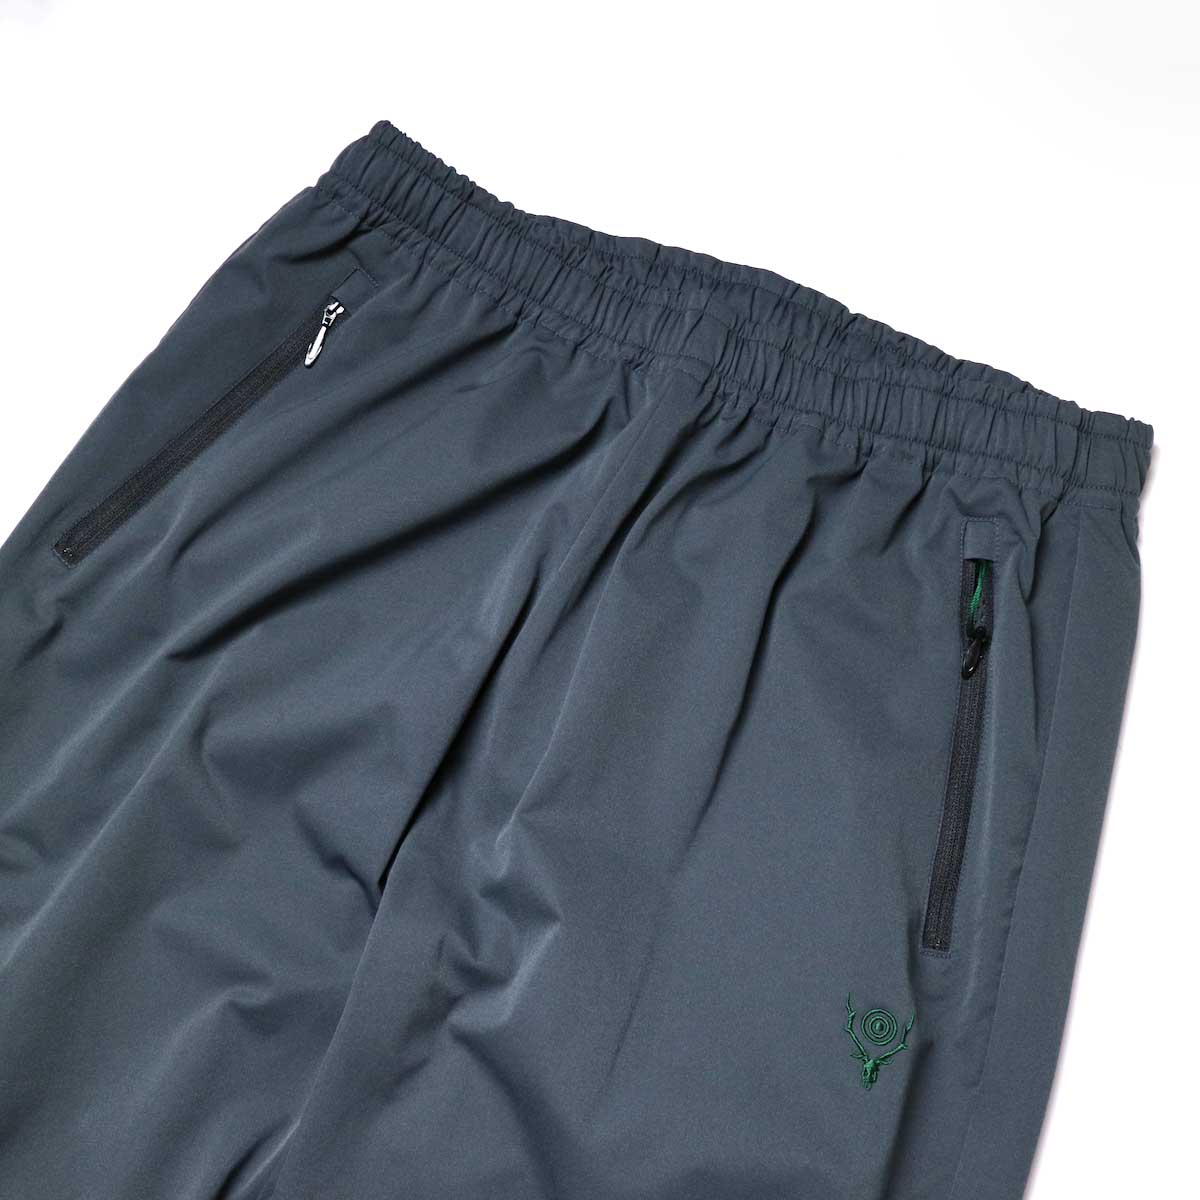 South2 West8 / Boulder Pant -Poly Stretch Twill (Charcoal)ウエスト